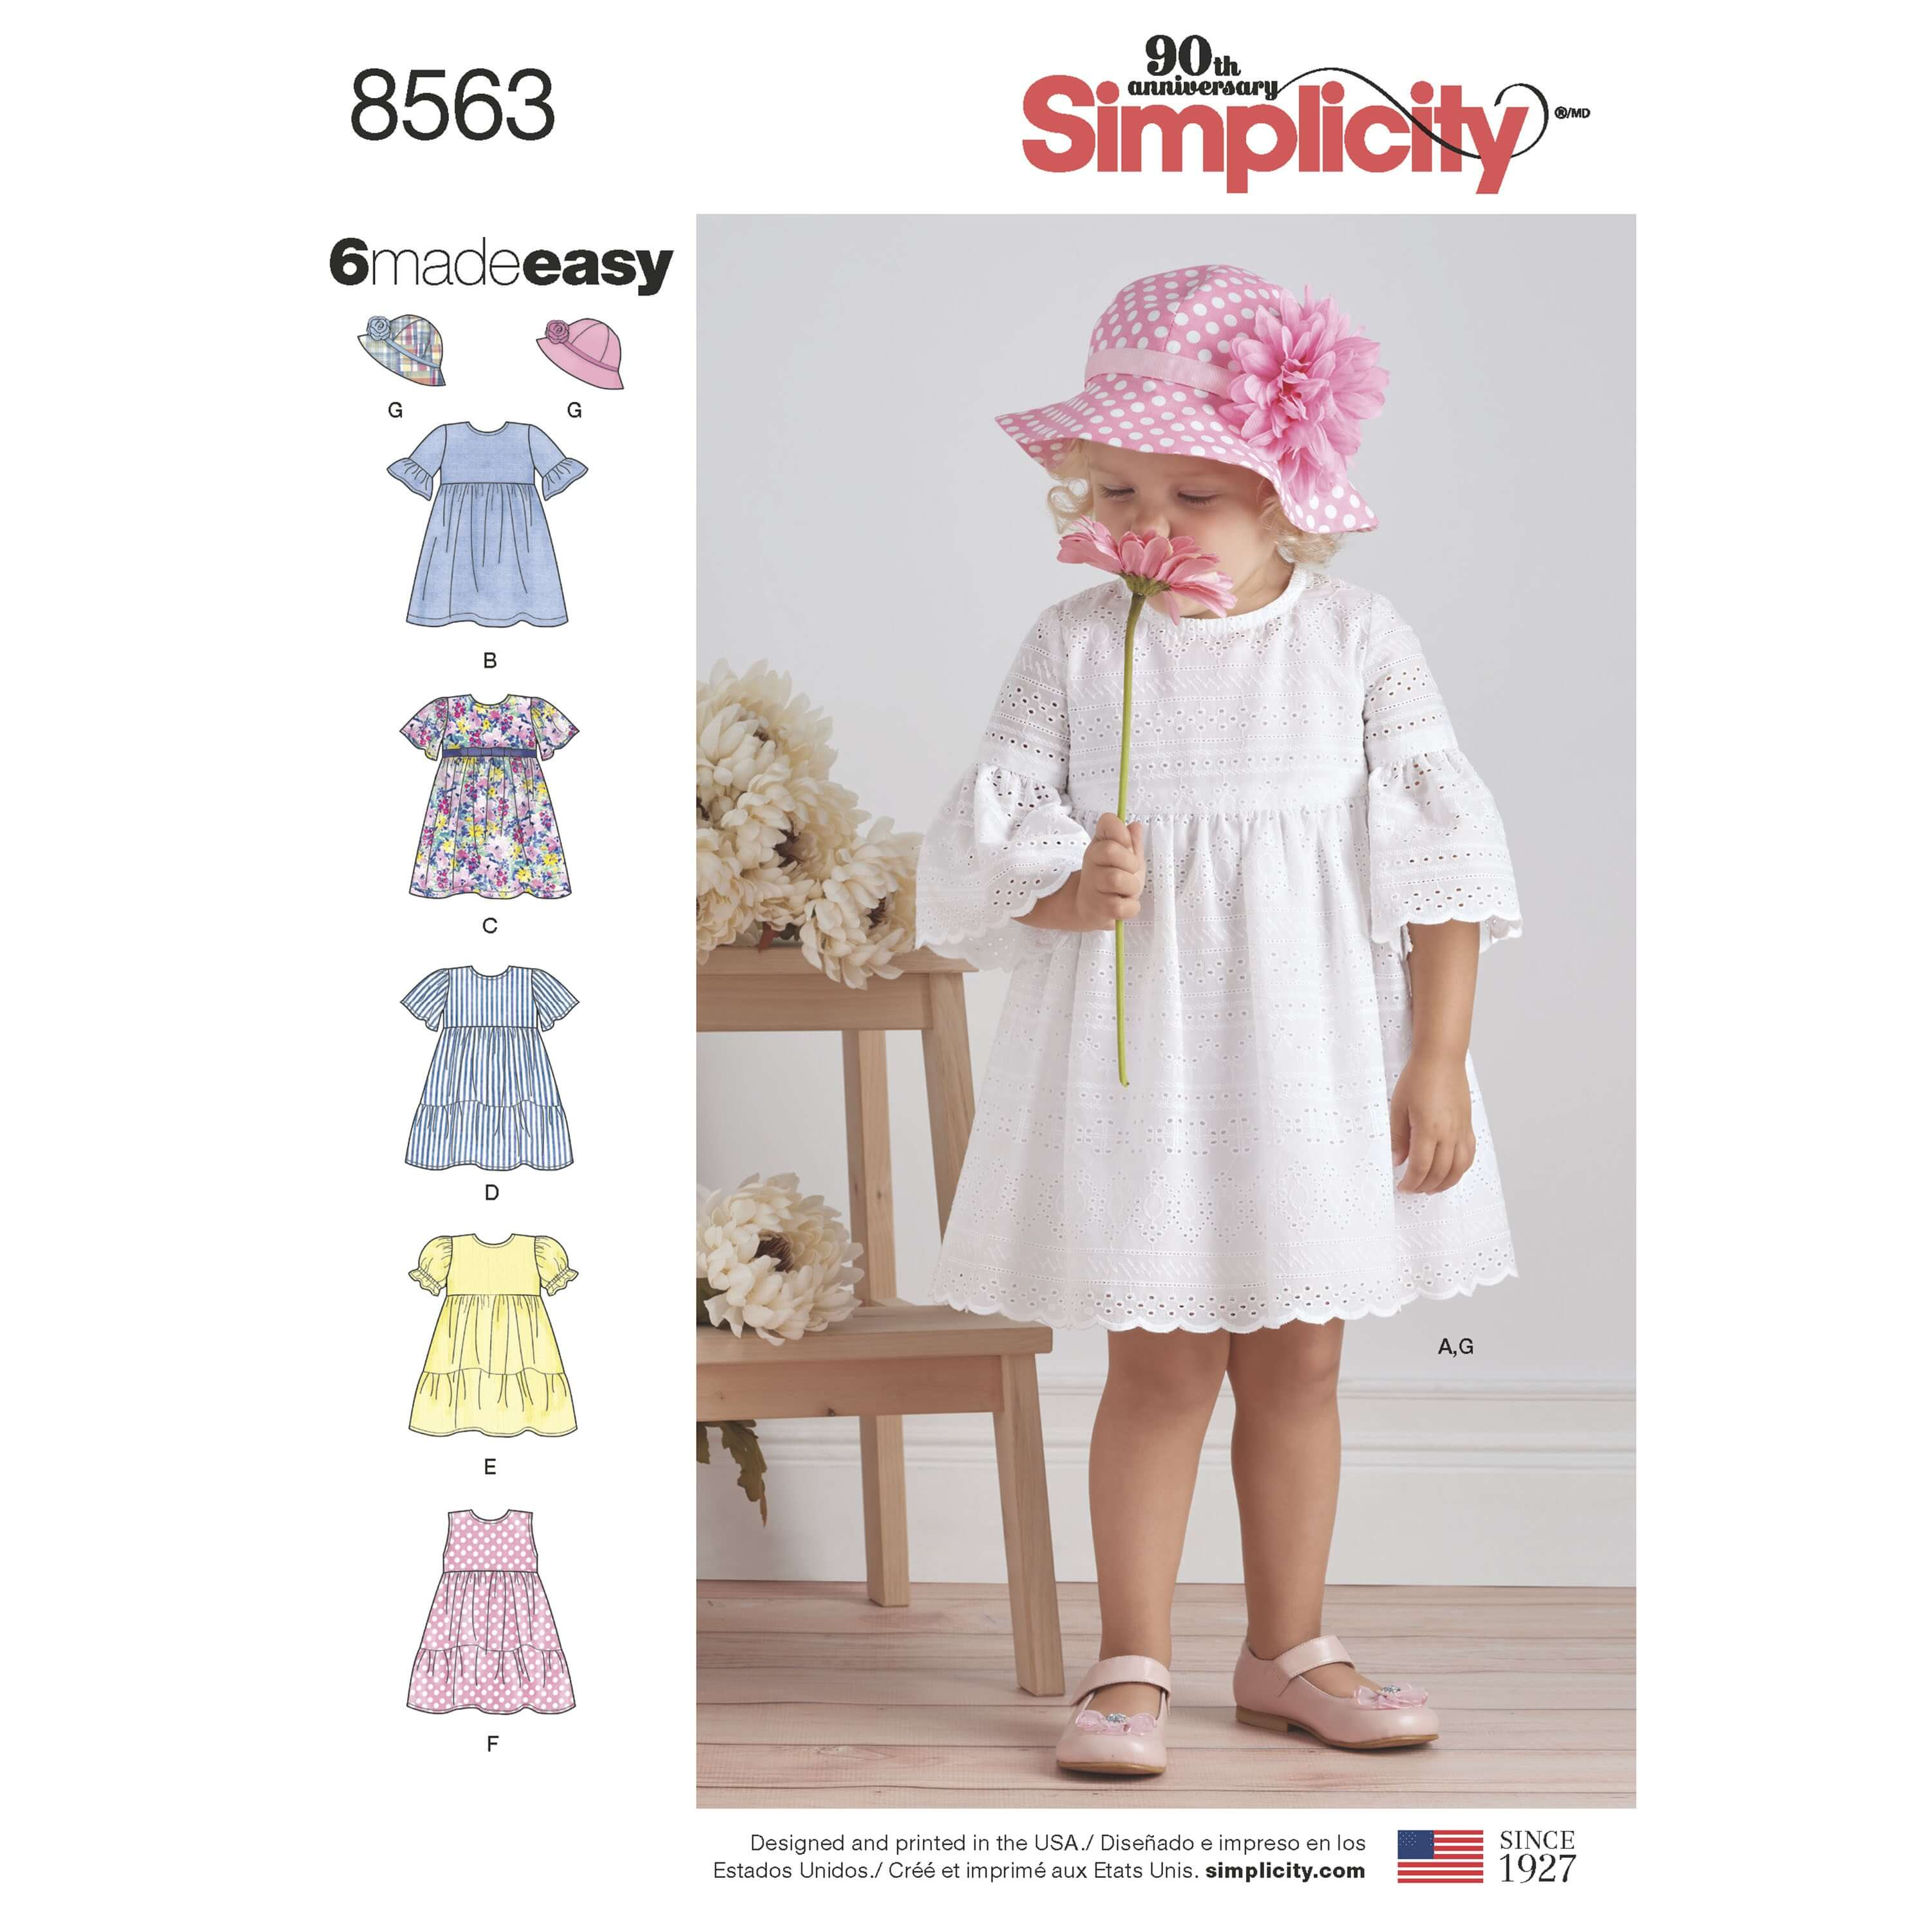 Simplicity Sewing Pattern 8563 Toddler Summer Dresses and Hats